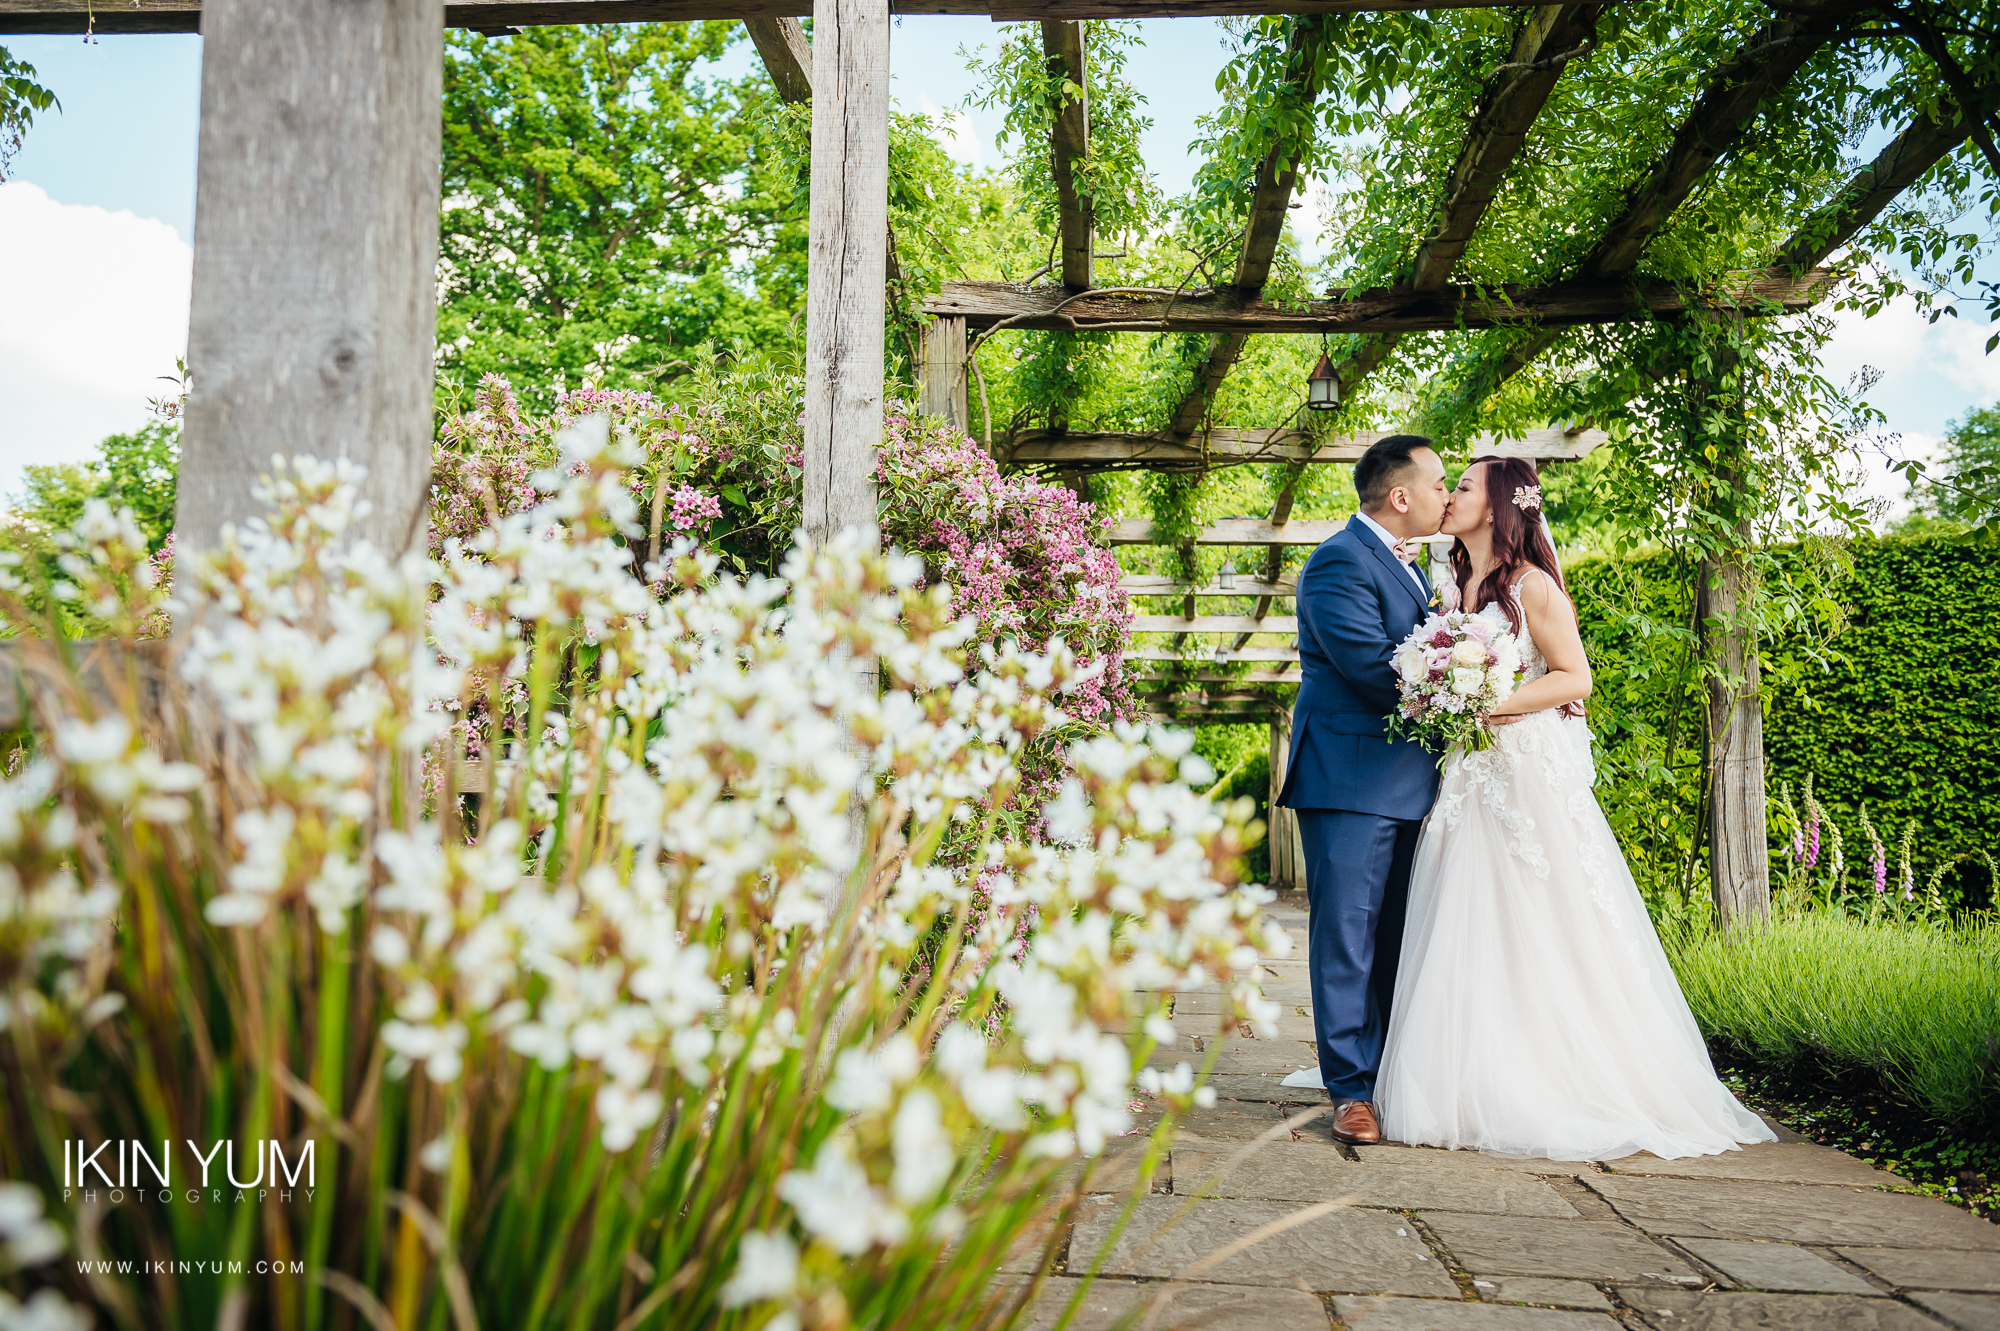 Wedding Photography at Great Foster, Surrey - Chinese Wedding Photographer -  英国伦敦 婚礼 摄影